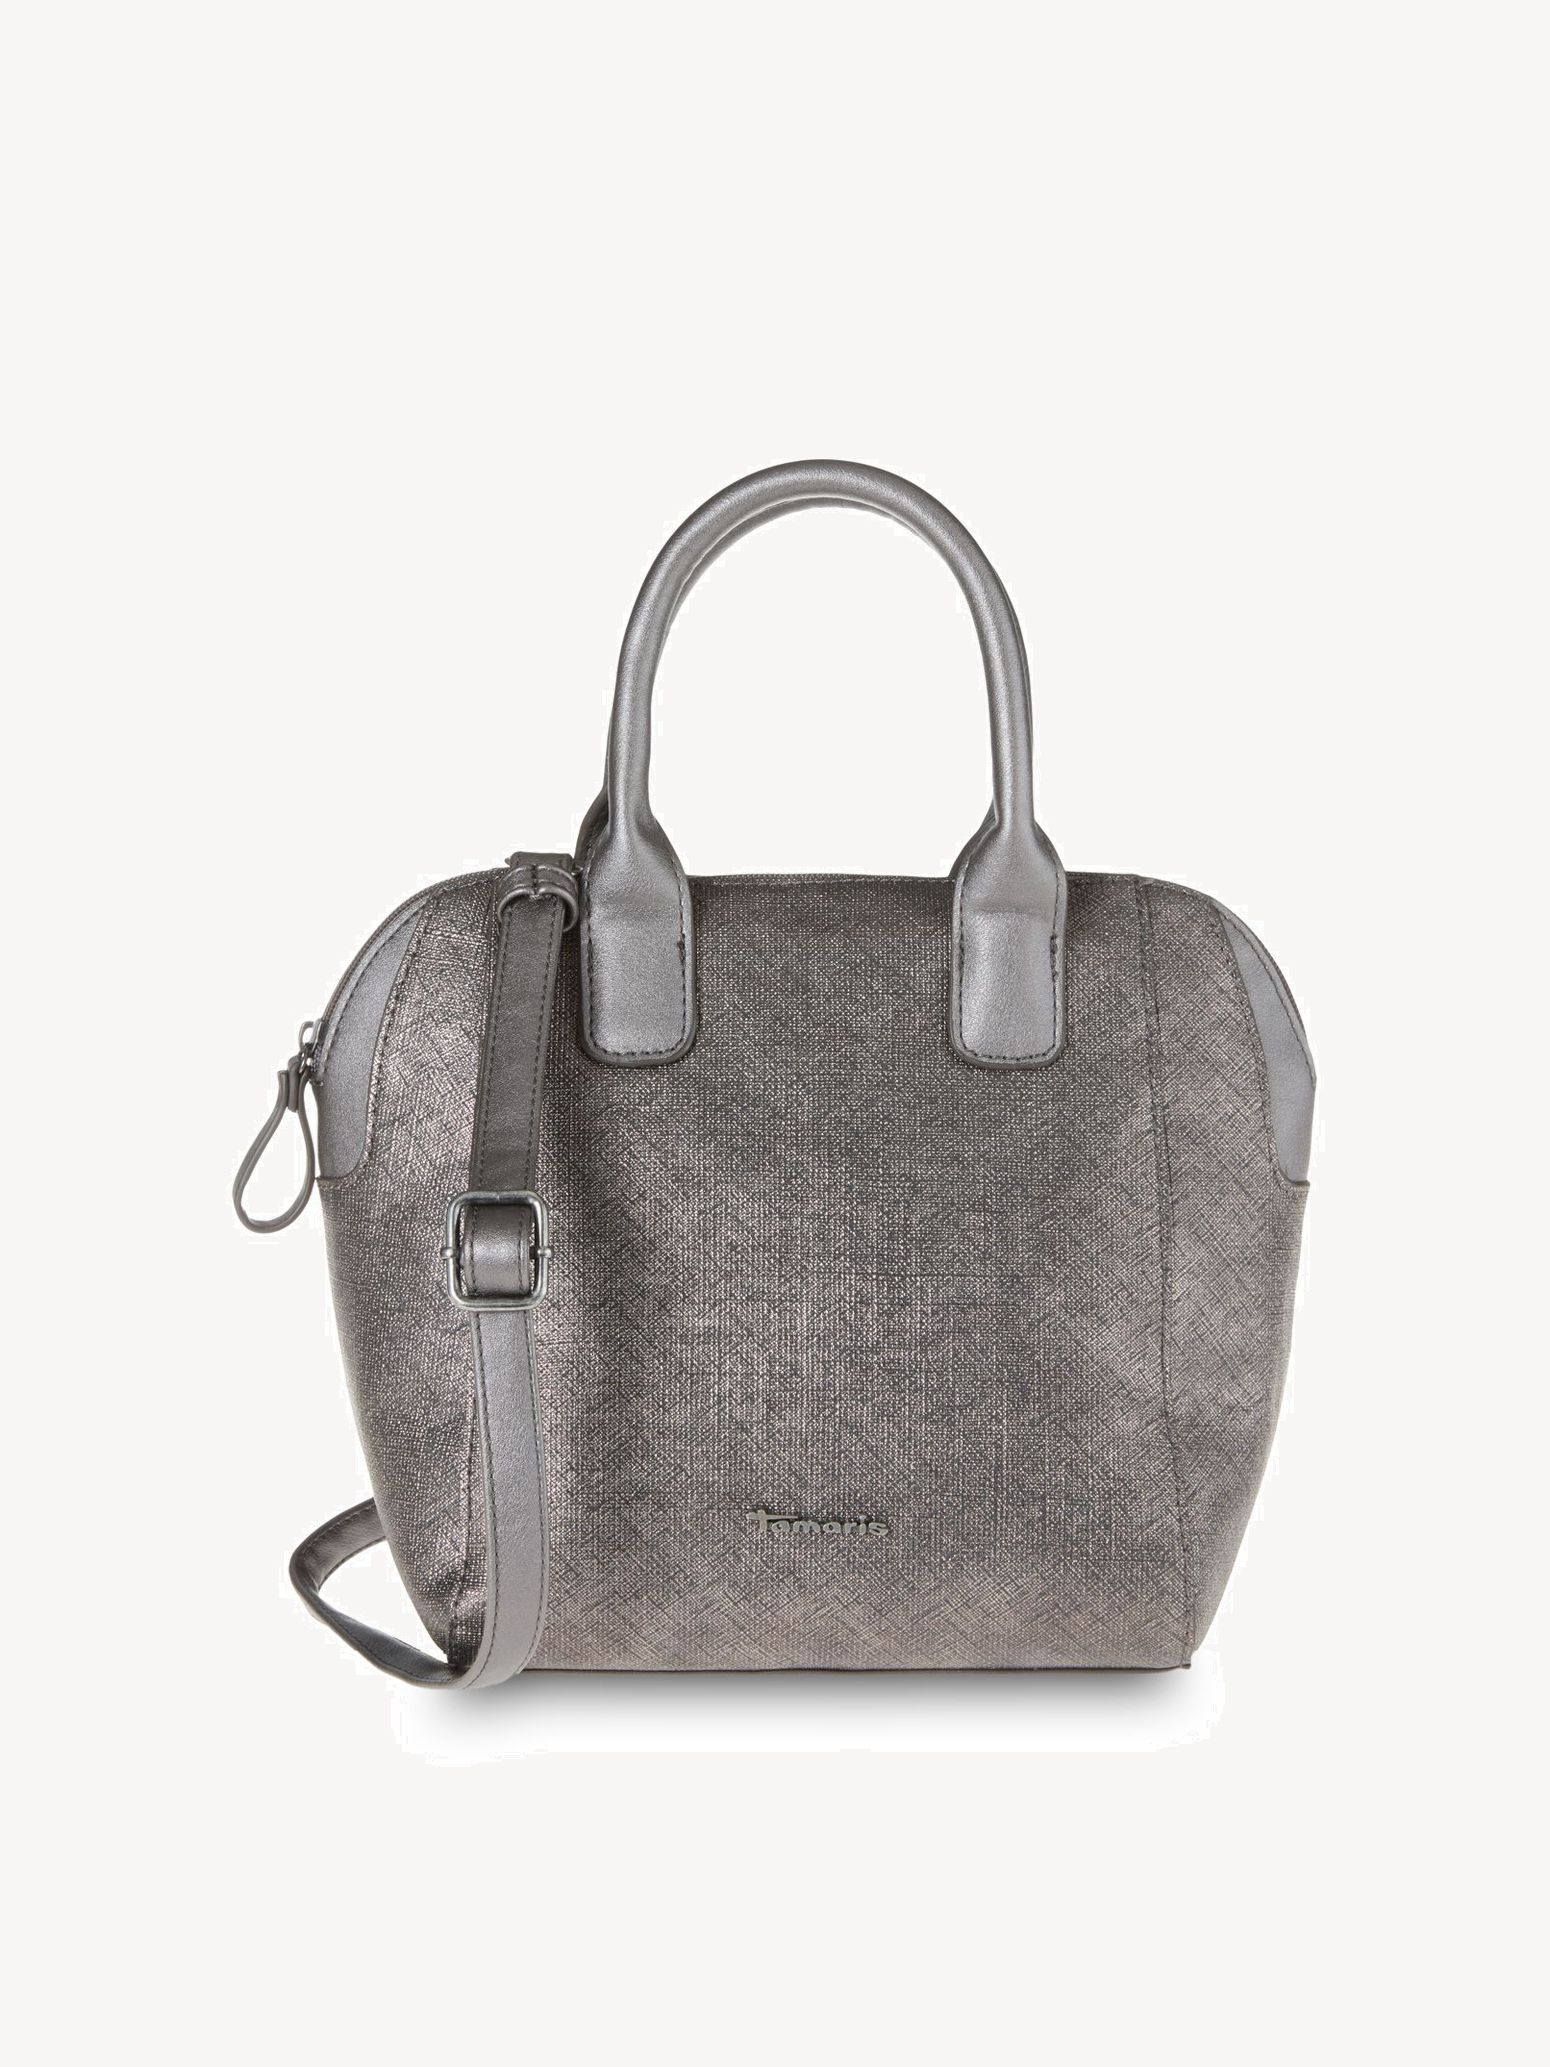 d36be43ace Alia 2314172-917-1  Buy Tamaris Handbags online!